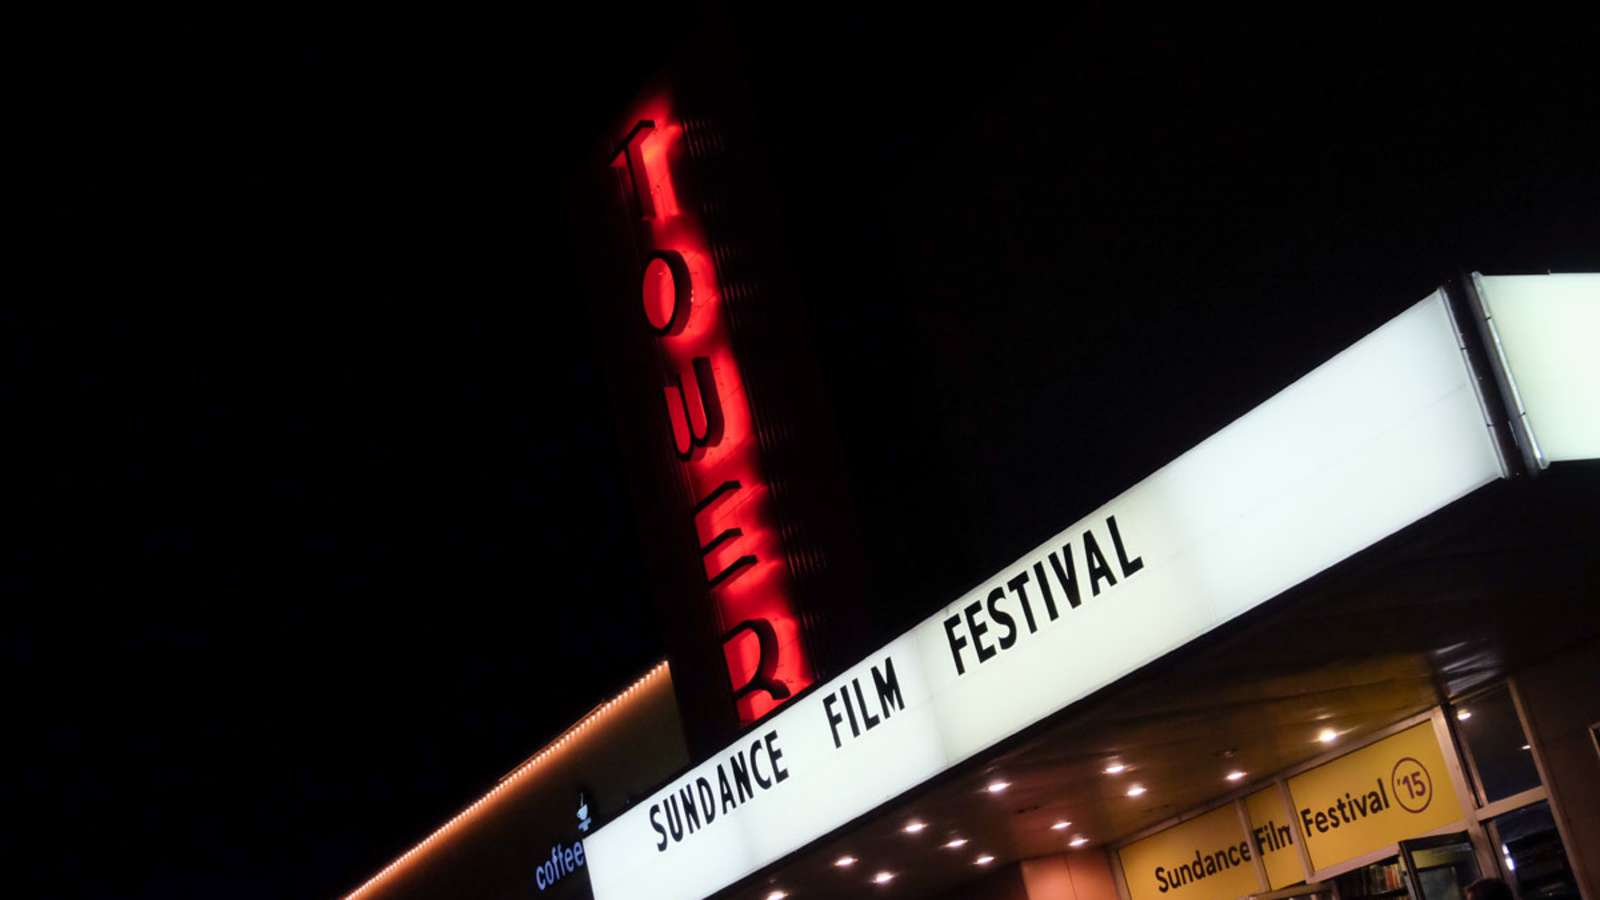 Sundance Film Festival Tower Theatre